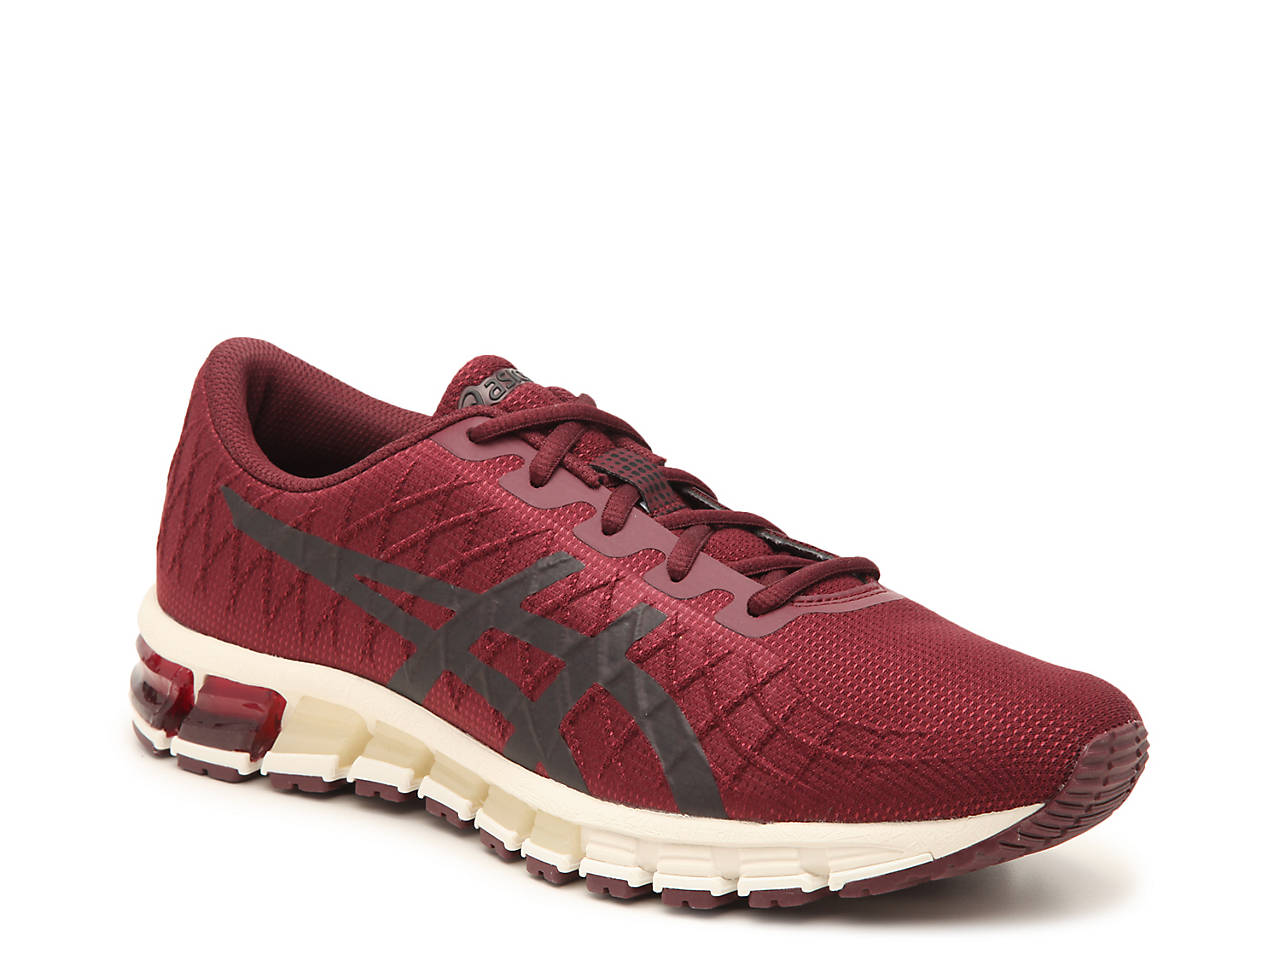 bbf944fafb ASICS Gel Quantum 180 4 Running Shoe - Men s Men s Shoes